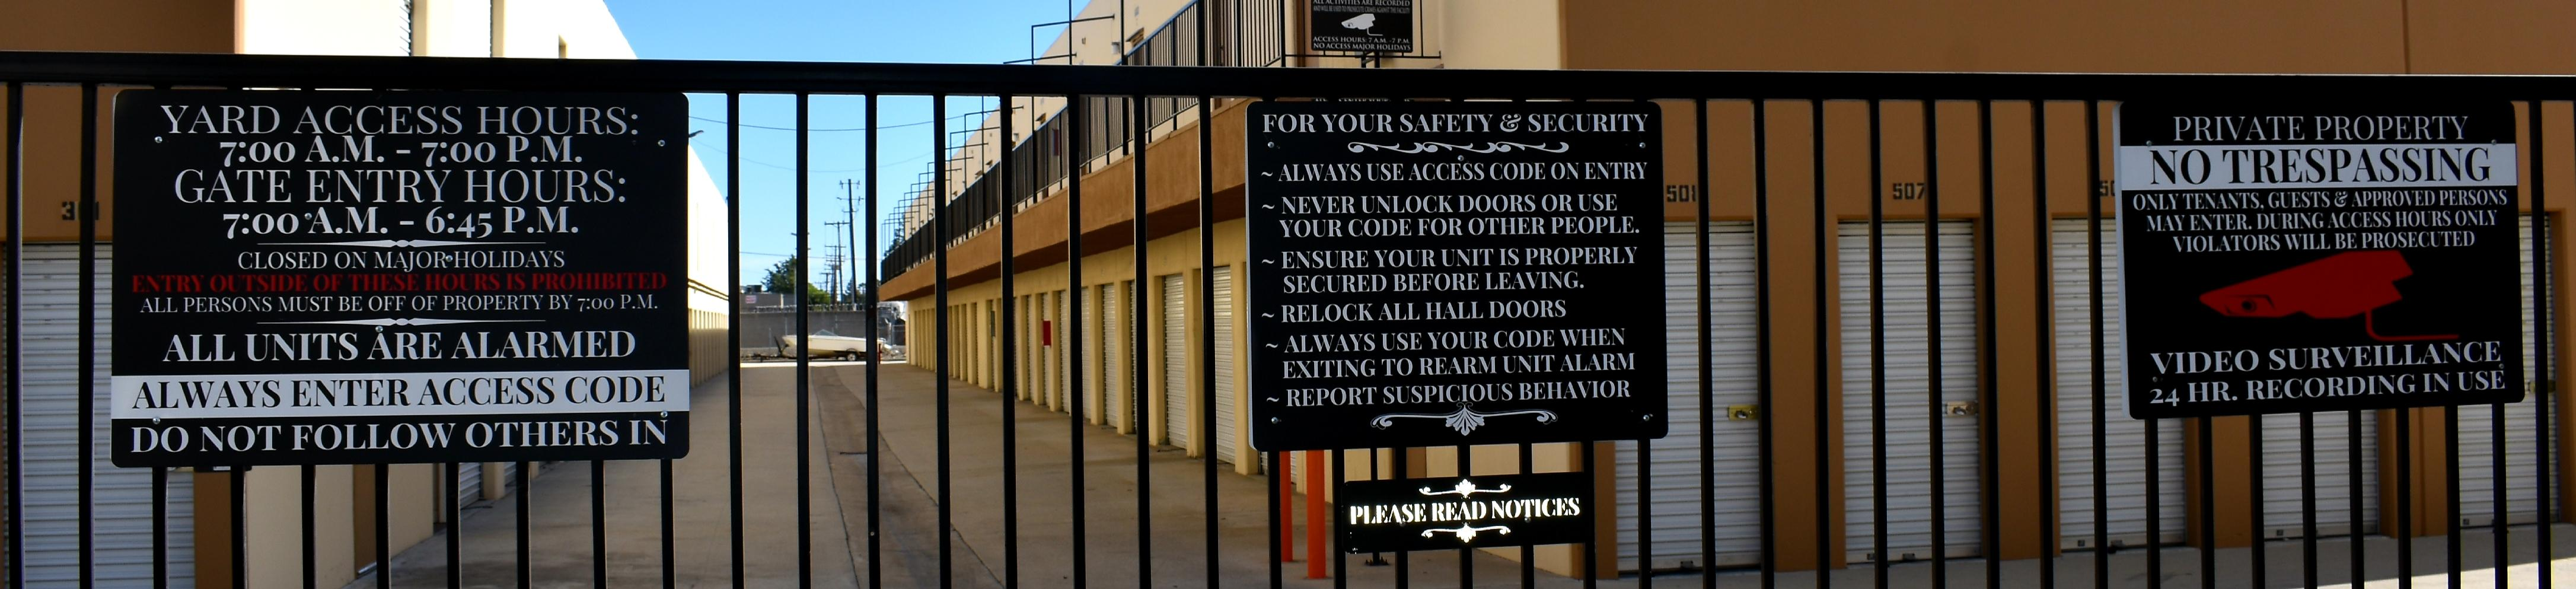 Guardian Storage Fullerton Anaheim Security Policies Security Features